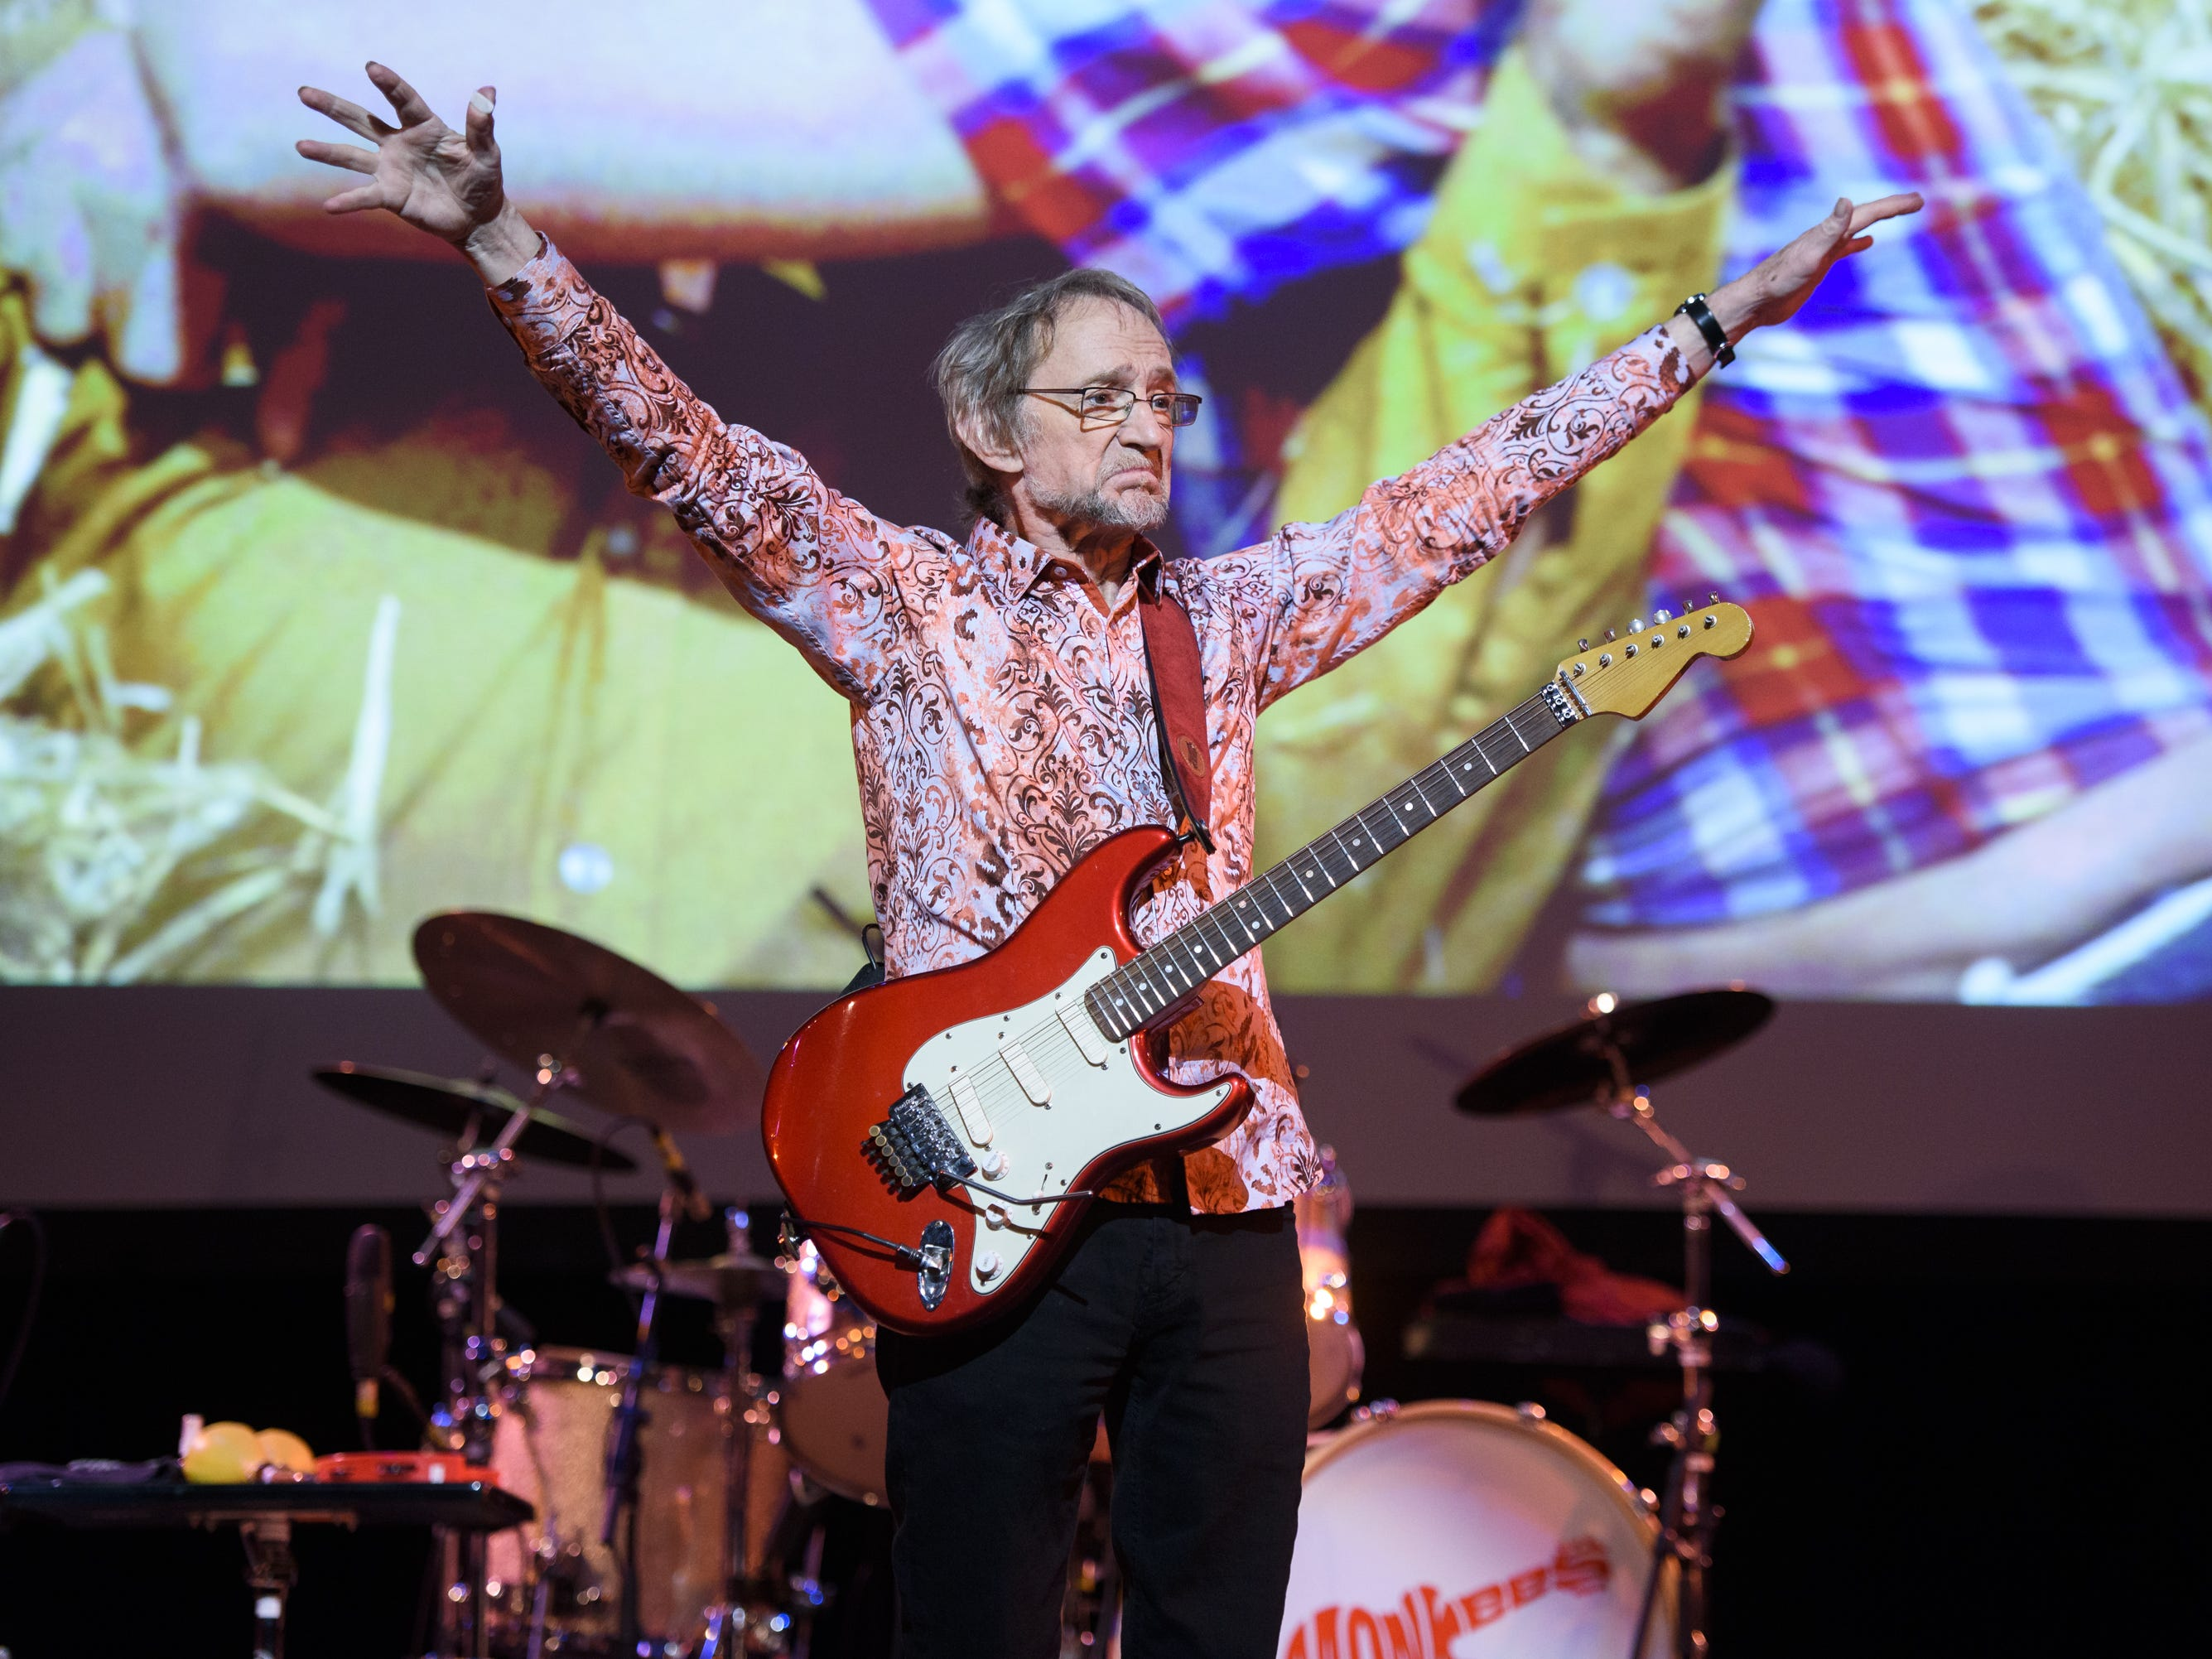 Peter Tork of The Monkees performs live on stage at Town Hall on June 1, 2016 in New York City. Tork, who rocketed to teen idol fame in 1965 playing the lovably clueless bass guitarist in the made-for-television rock band The Monkees, died Thursday, Feb. 21, 2019, of complications related to cancer, according to his son Ivan Iannoli. He was 77.